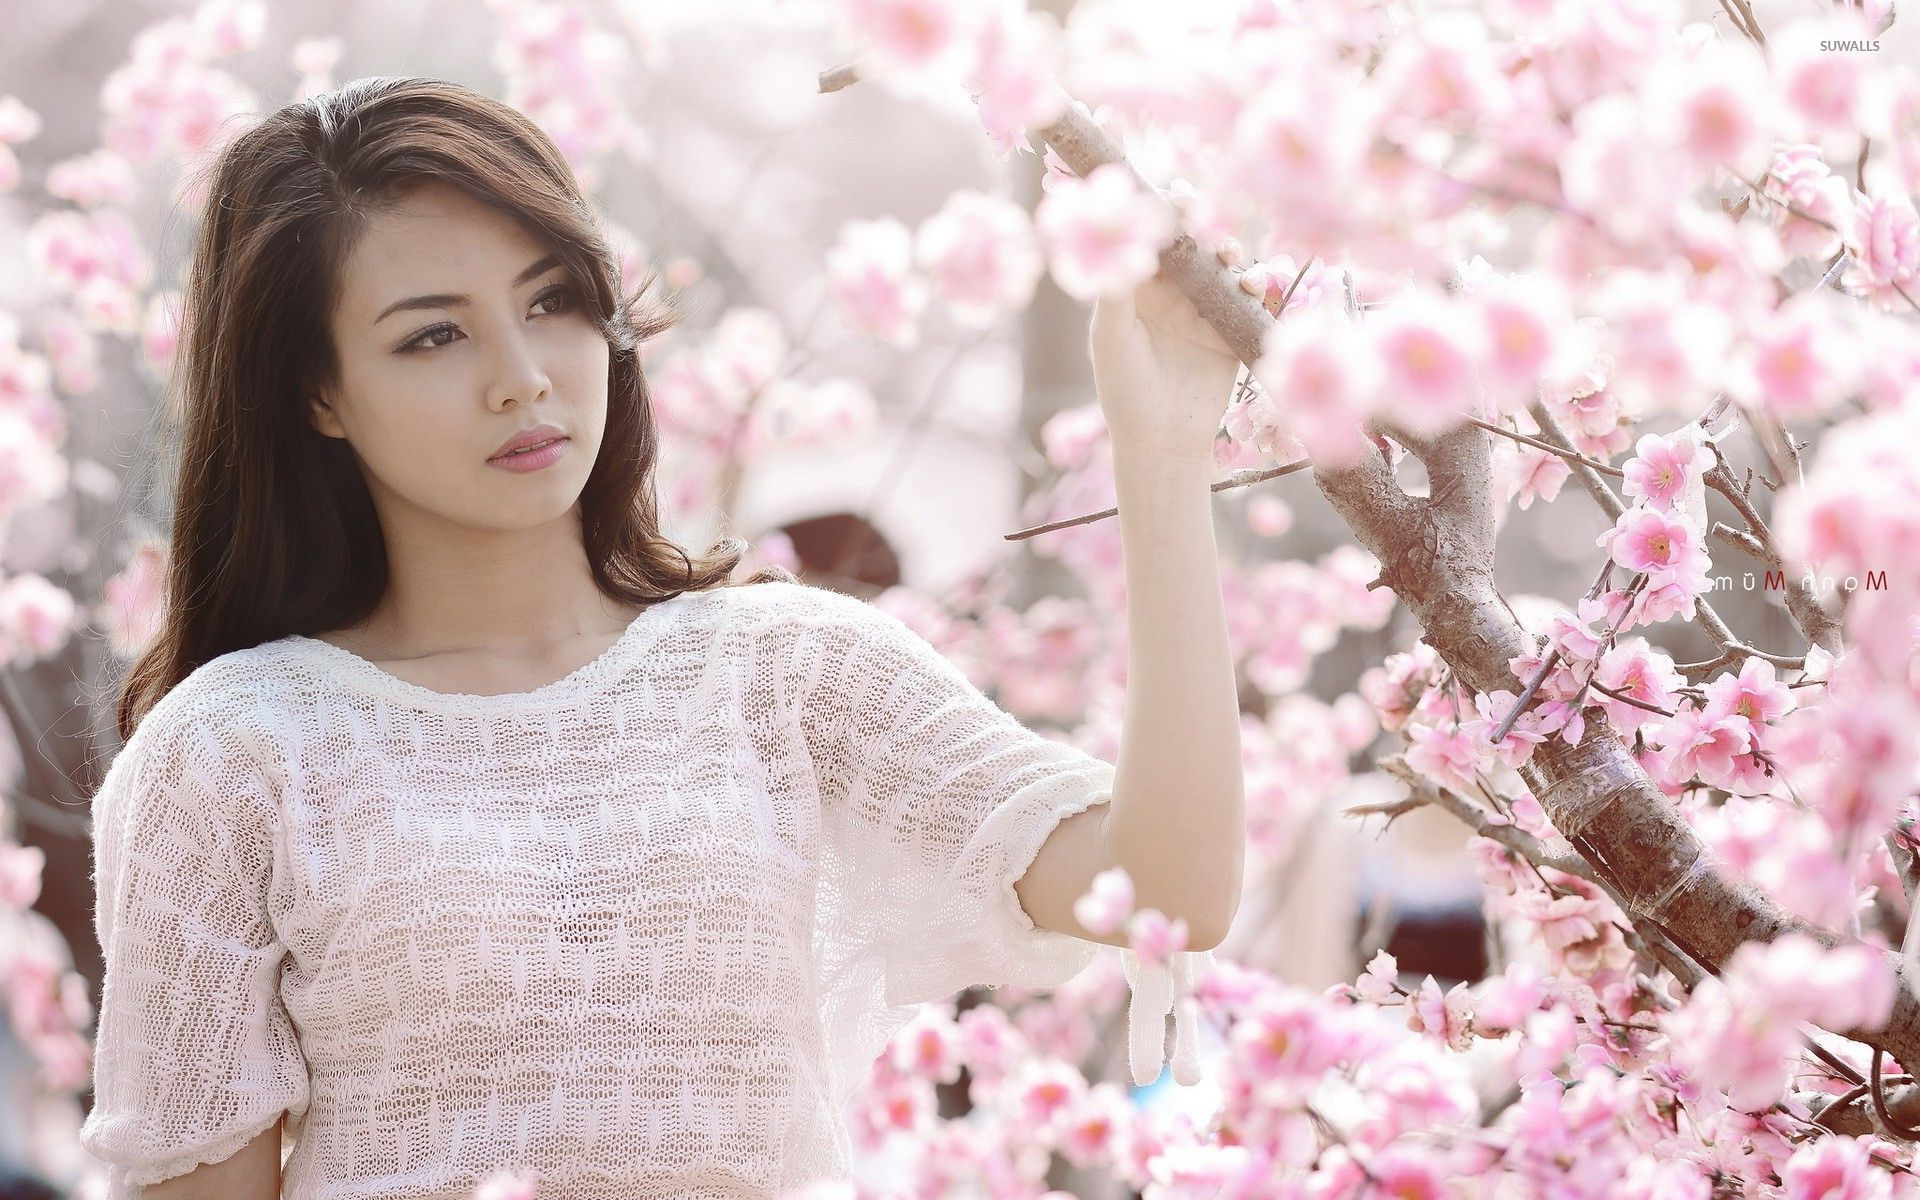 cherry tree single women Cherry blossoms is the oldest and one of the largest international social  networking companies in the world today it was established in 1974 as a picture  catalog specializing in women from.